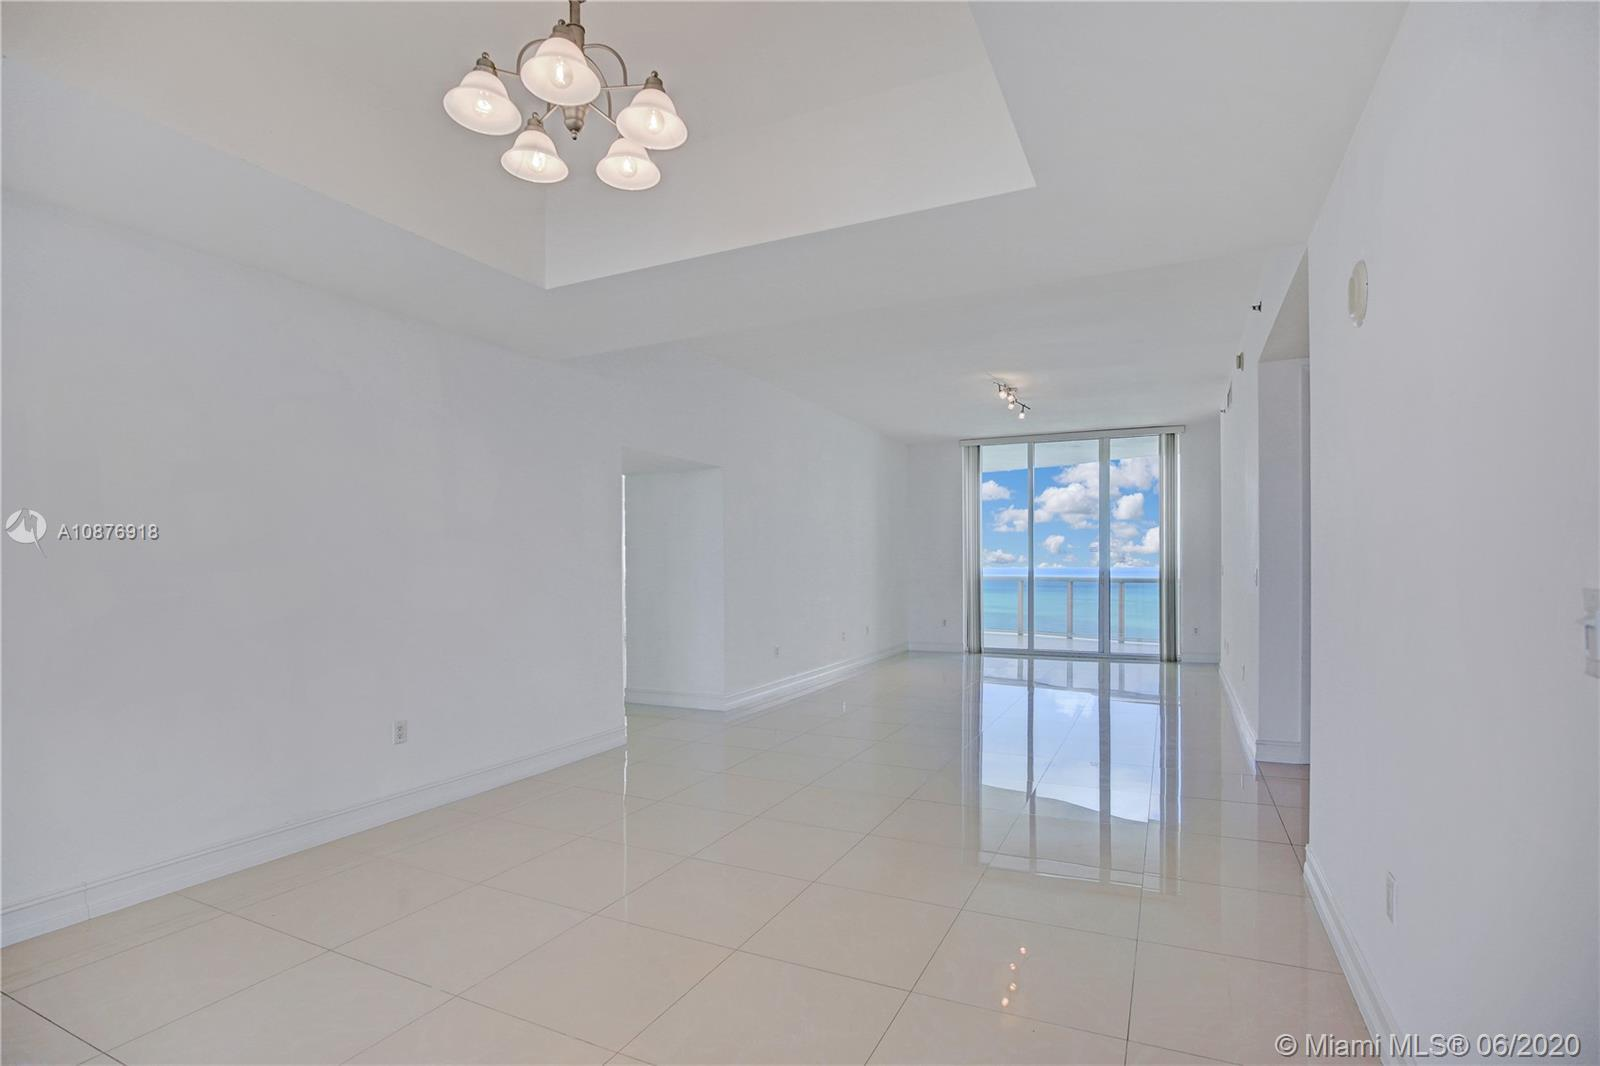 3 Bedrooms / 3.5 Baths beachfront unit with 4 balconies where you will enjoy the Amazing and breatht